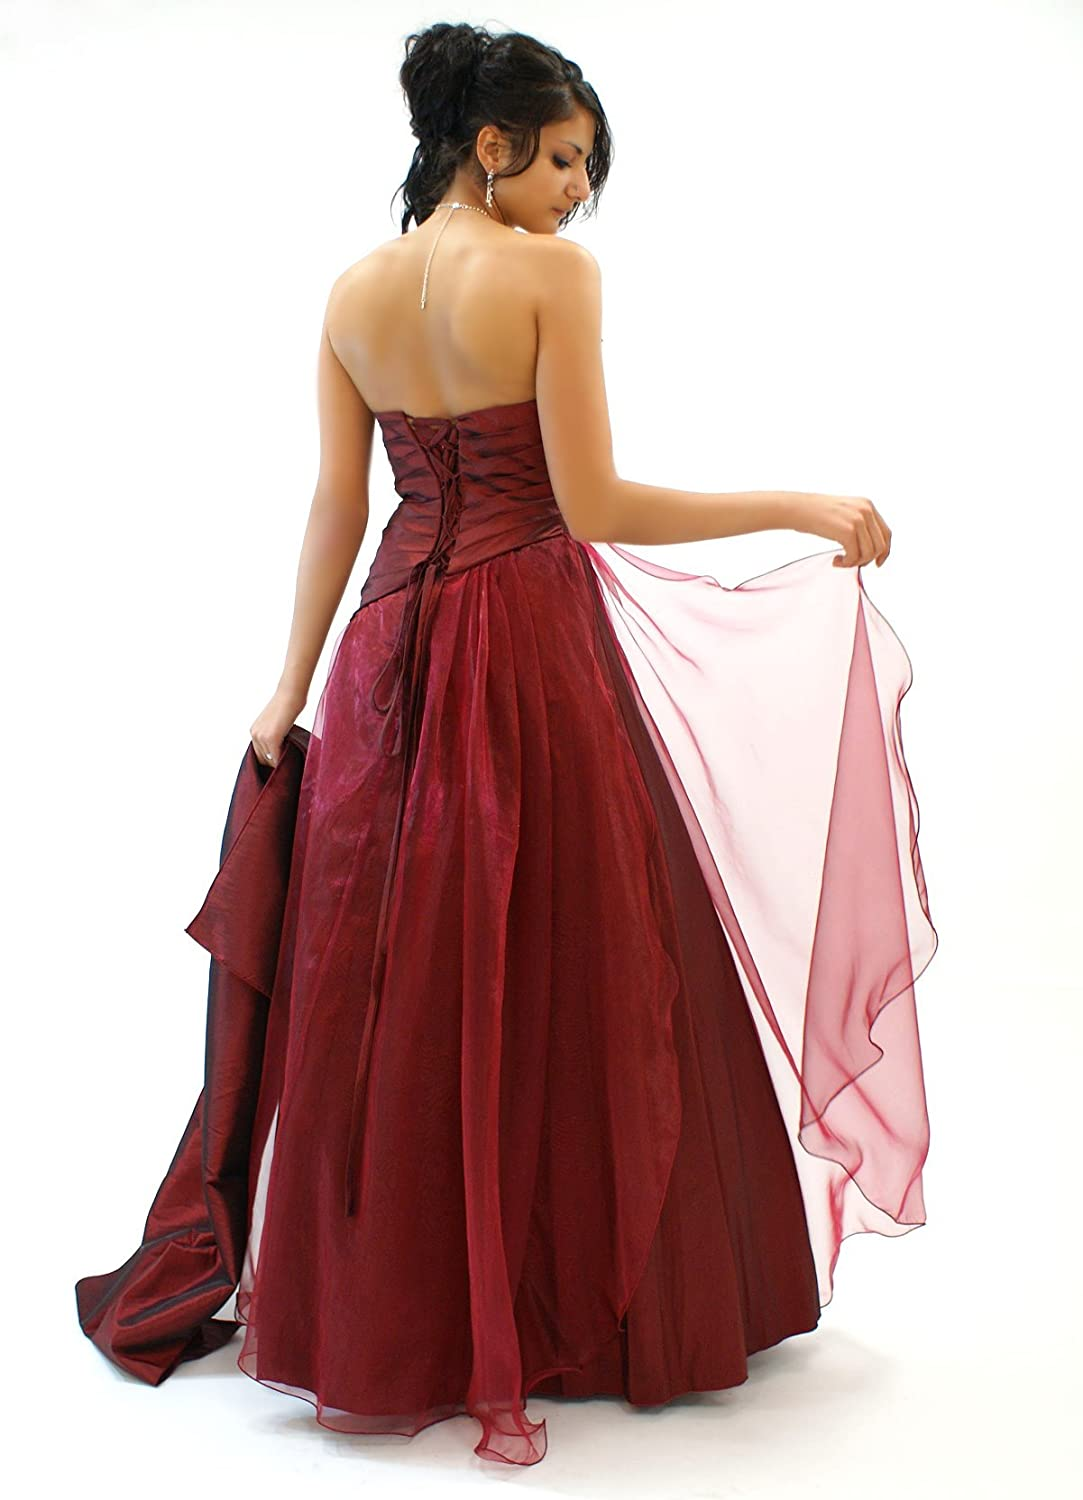 Young-Fashion La Robe du Soir en Organza (2013) Rouge